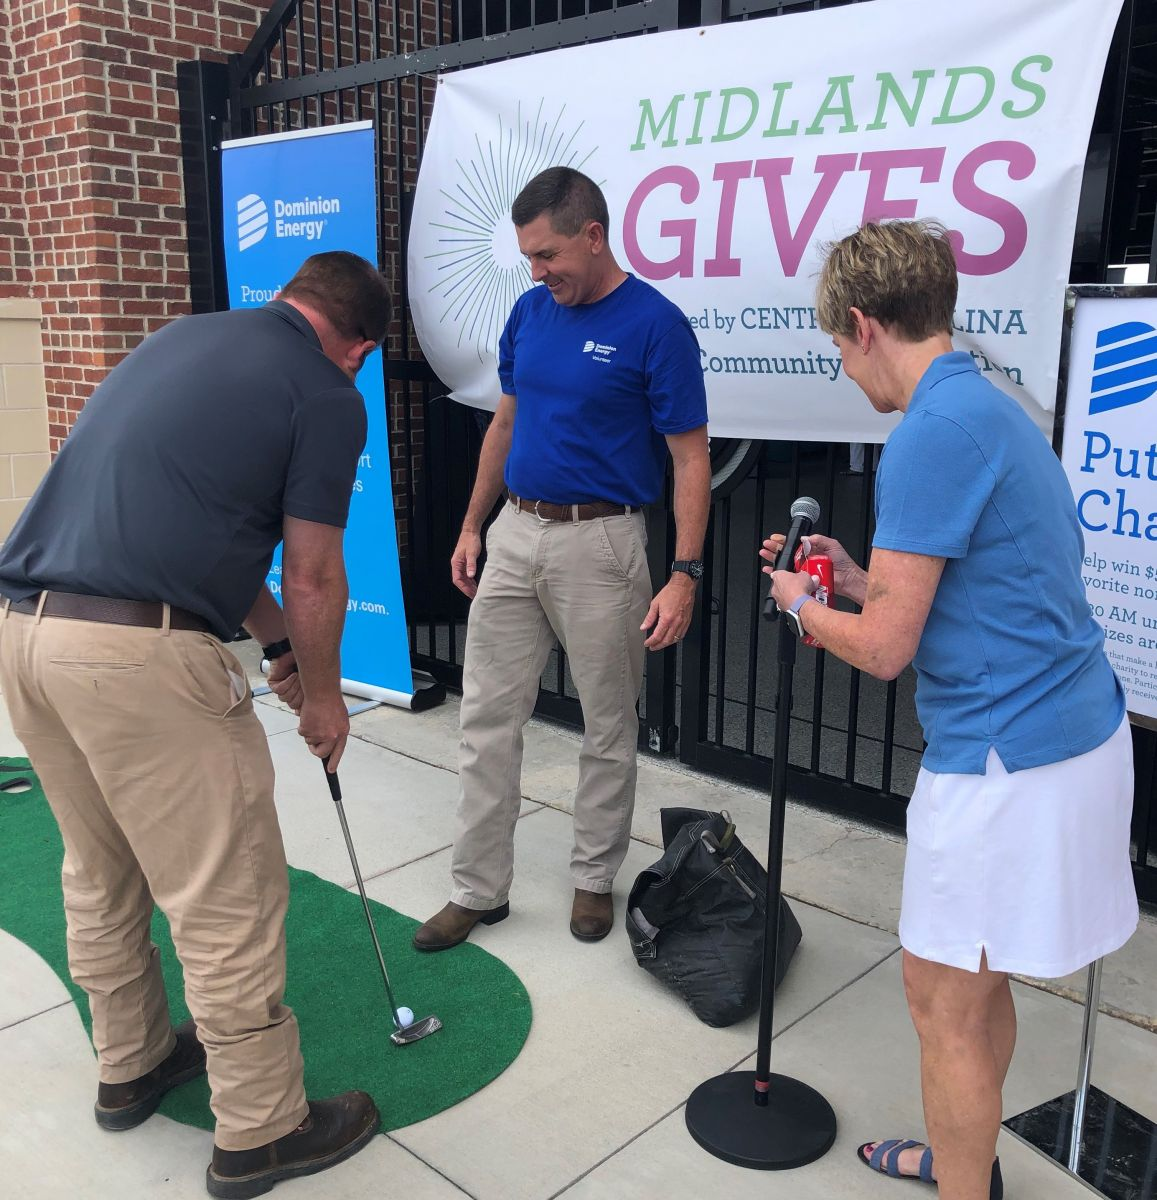 Participants test their skills in the Dominion Energy putting challenge during the 2019 Midlands Gives event at Segra Park. (Photo/Provided)